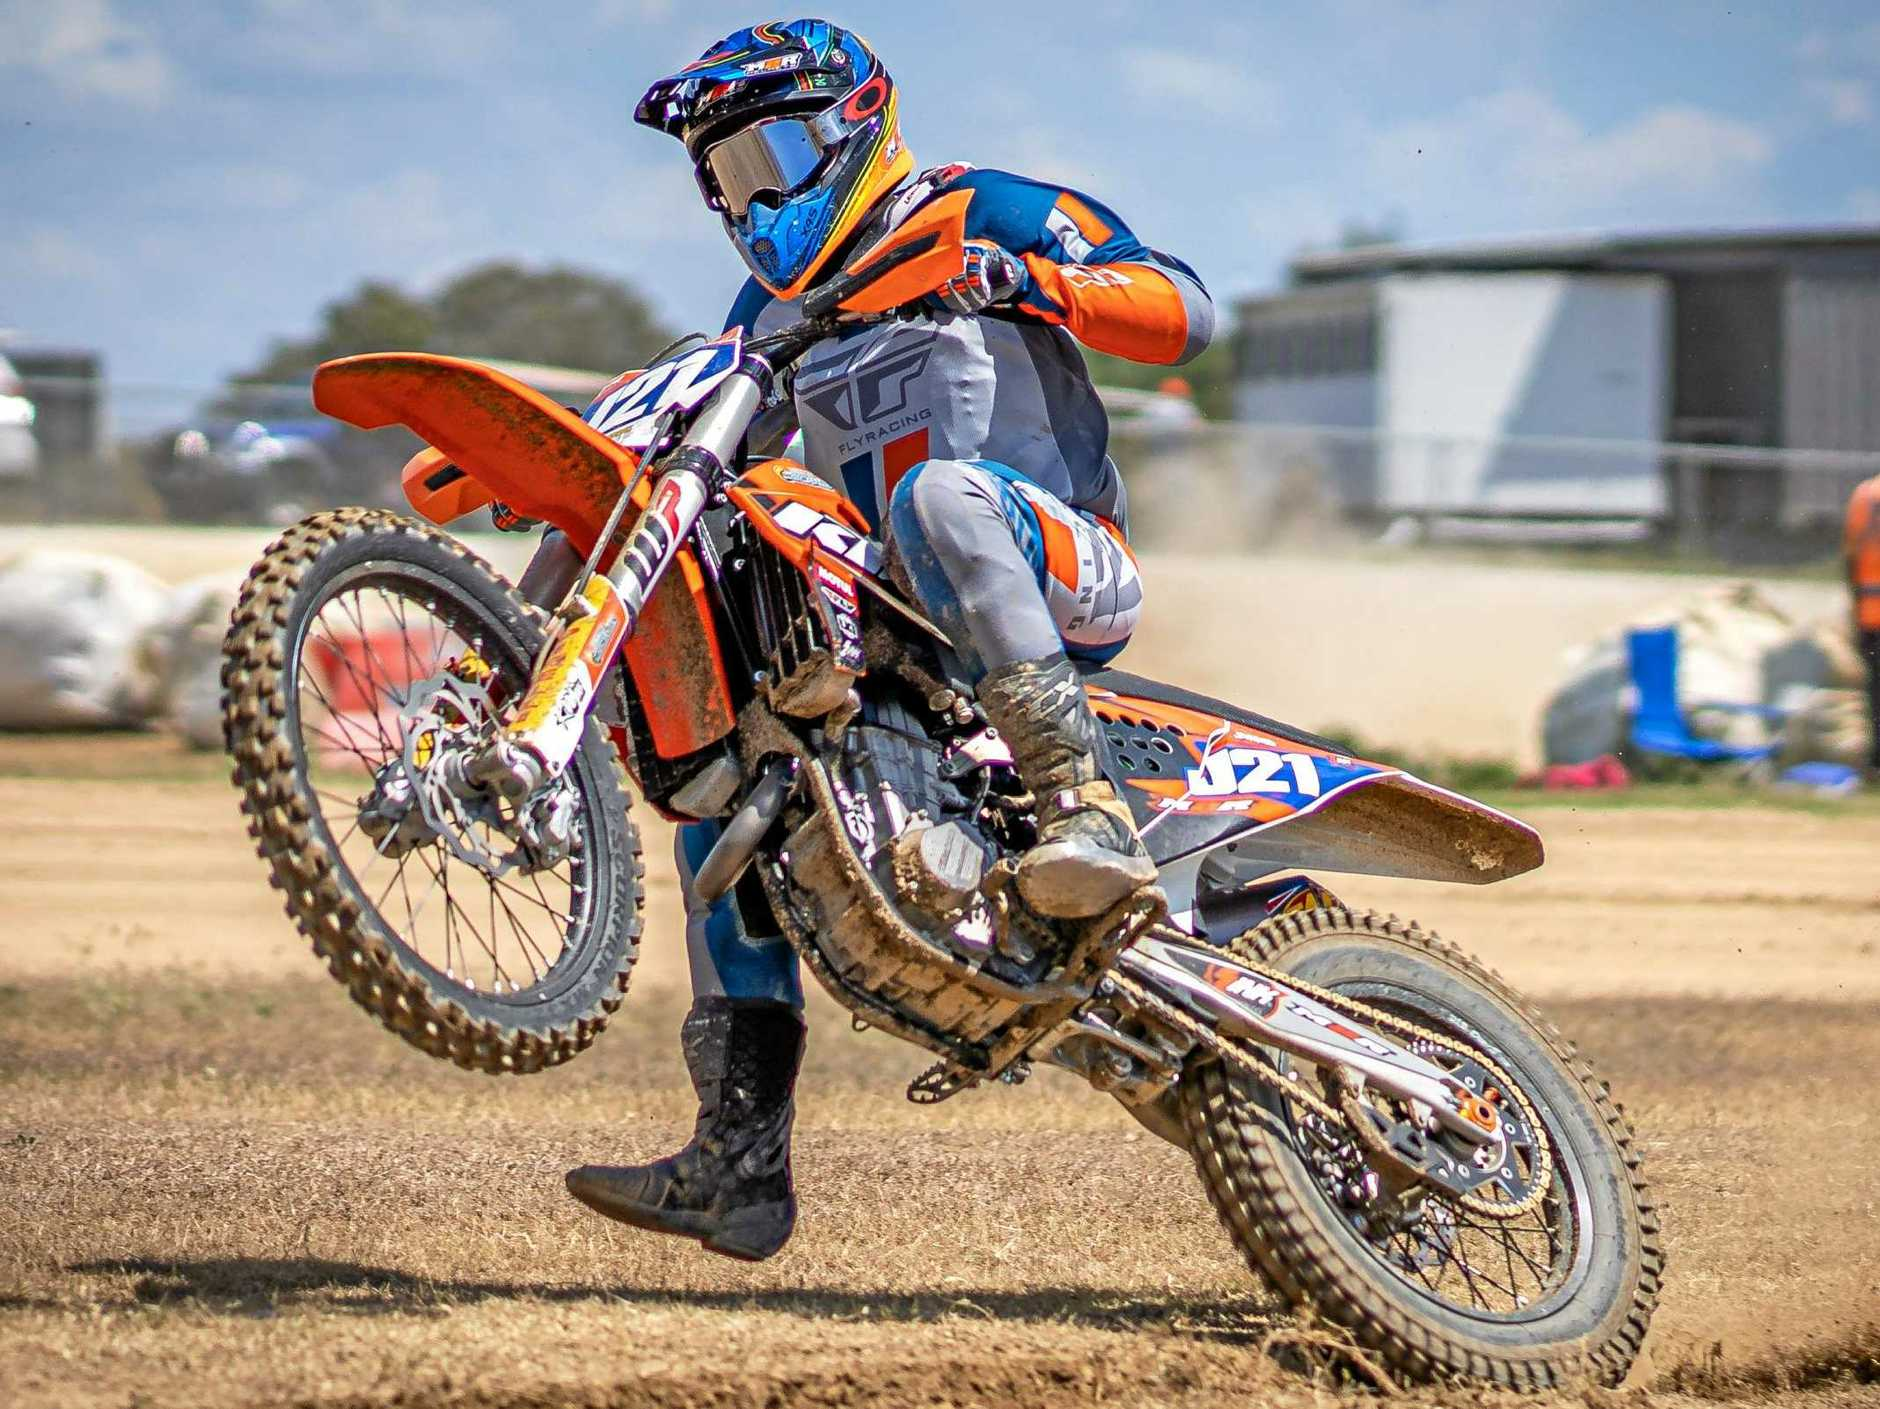 TRIPLE CHAMP: Six weeks and 1200 kilometres apart, the outcome was the same as Gympie rider Jarred Brook scored three class wins at the 2019 Australian Senior Dirt Track Championships at Barleigh Ranch over the weekend.